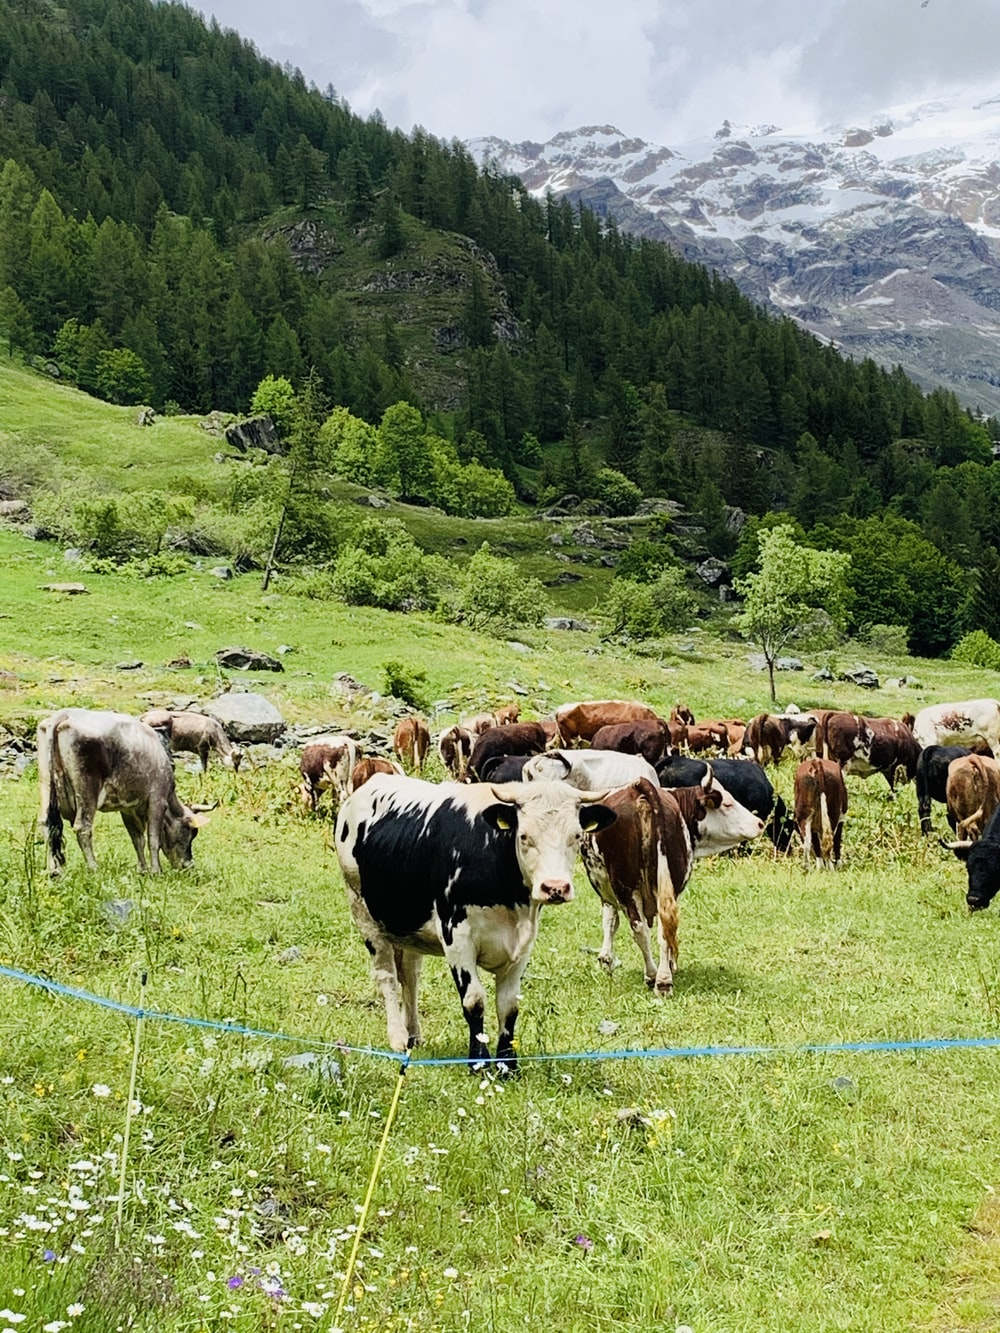 herd of cows on green grass field during daytime